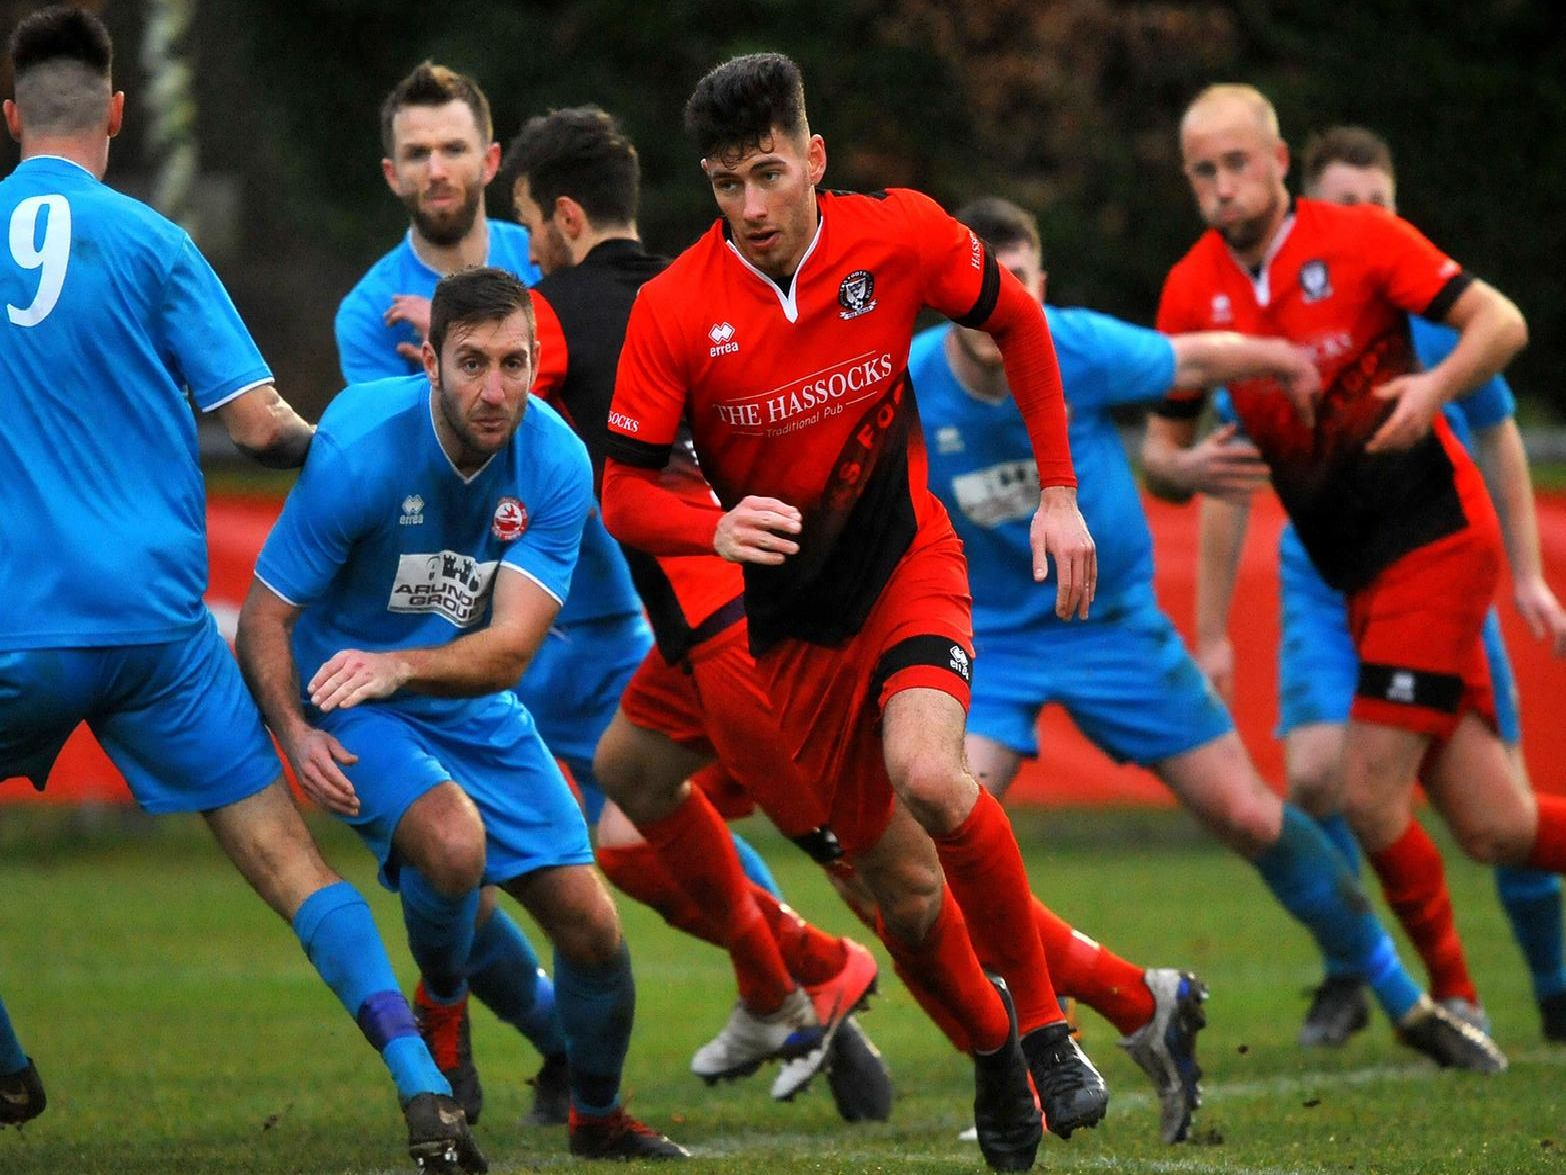 Liam Benson in action for Hassocks against Arundel